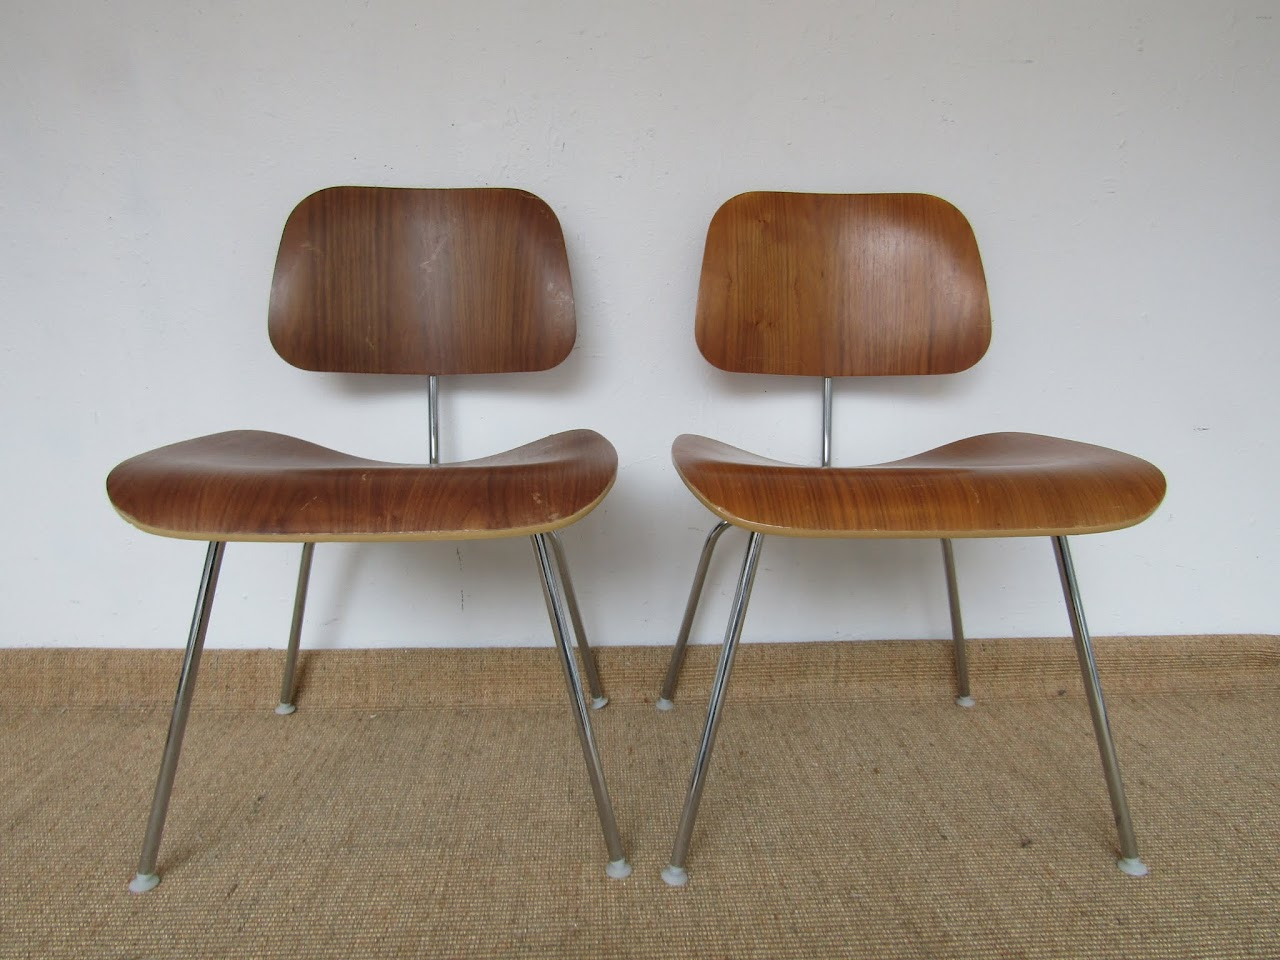 Eames Molded Plywood Chair Pair (5)